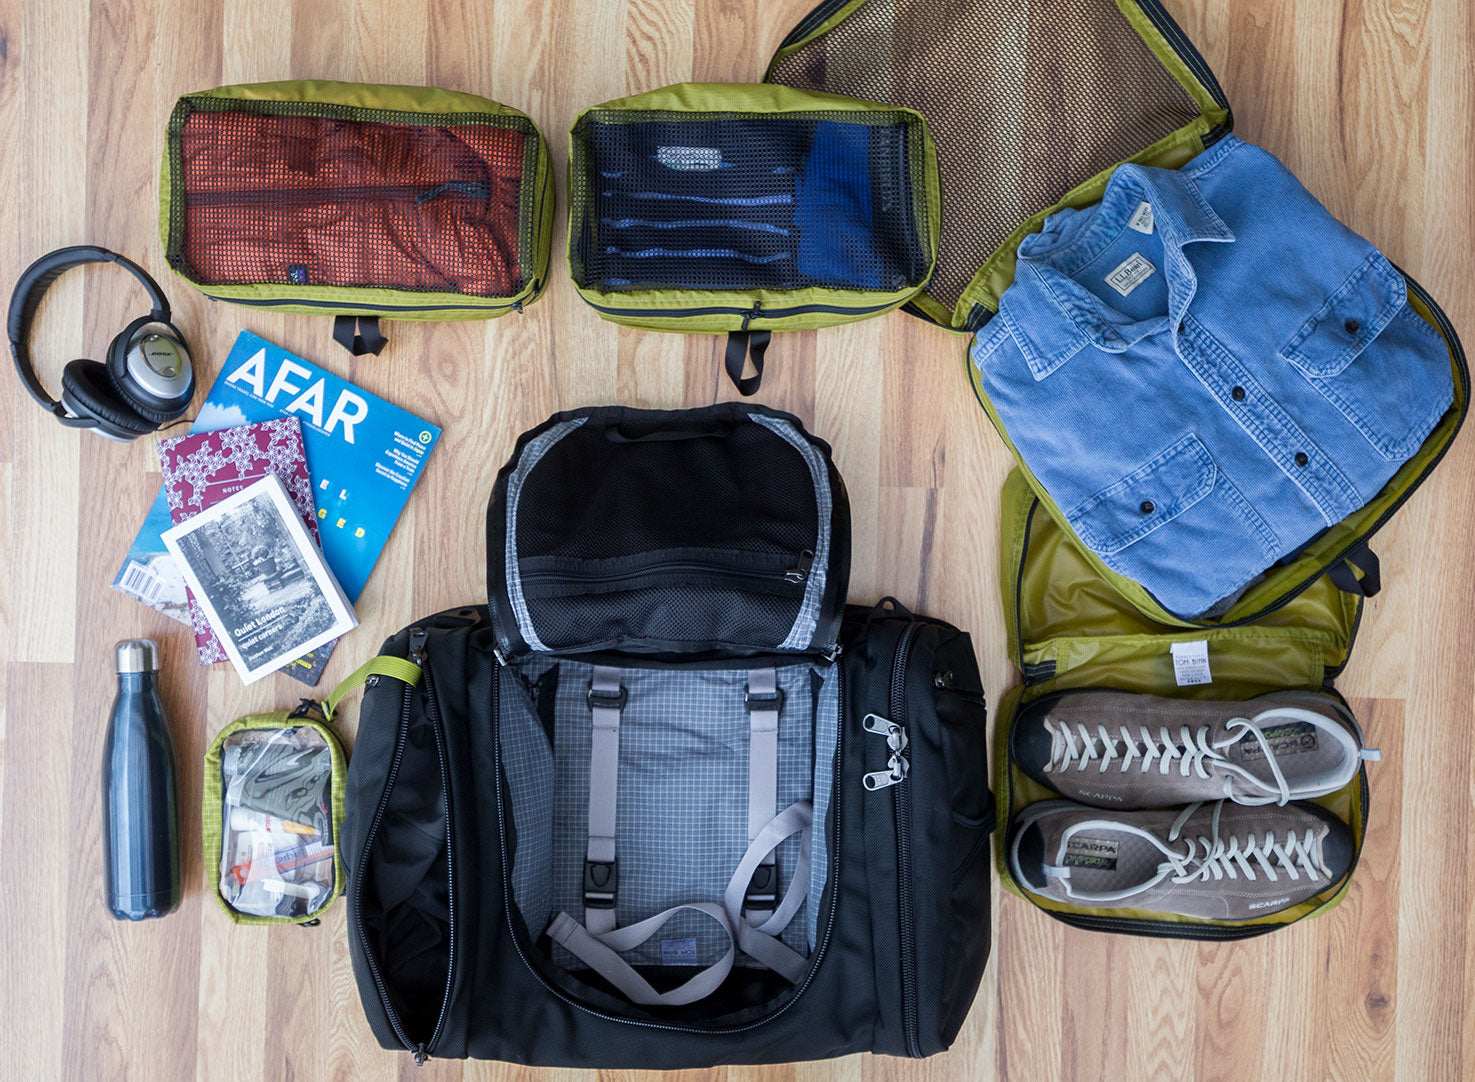 Aeronaut 45 Travel Bag with Packing Cubes by TOM BIHN